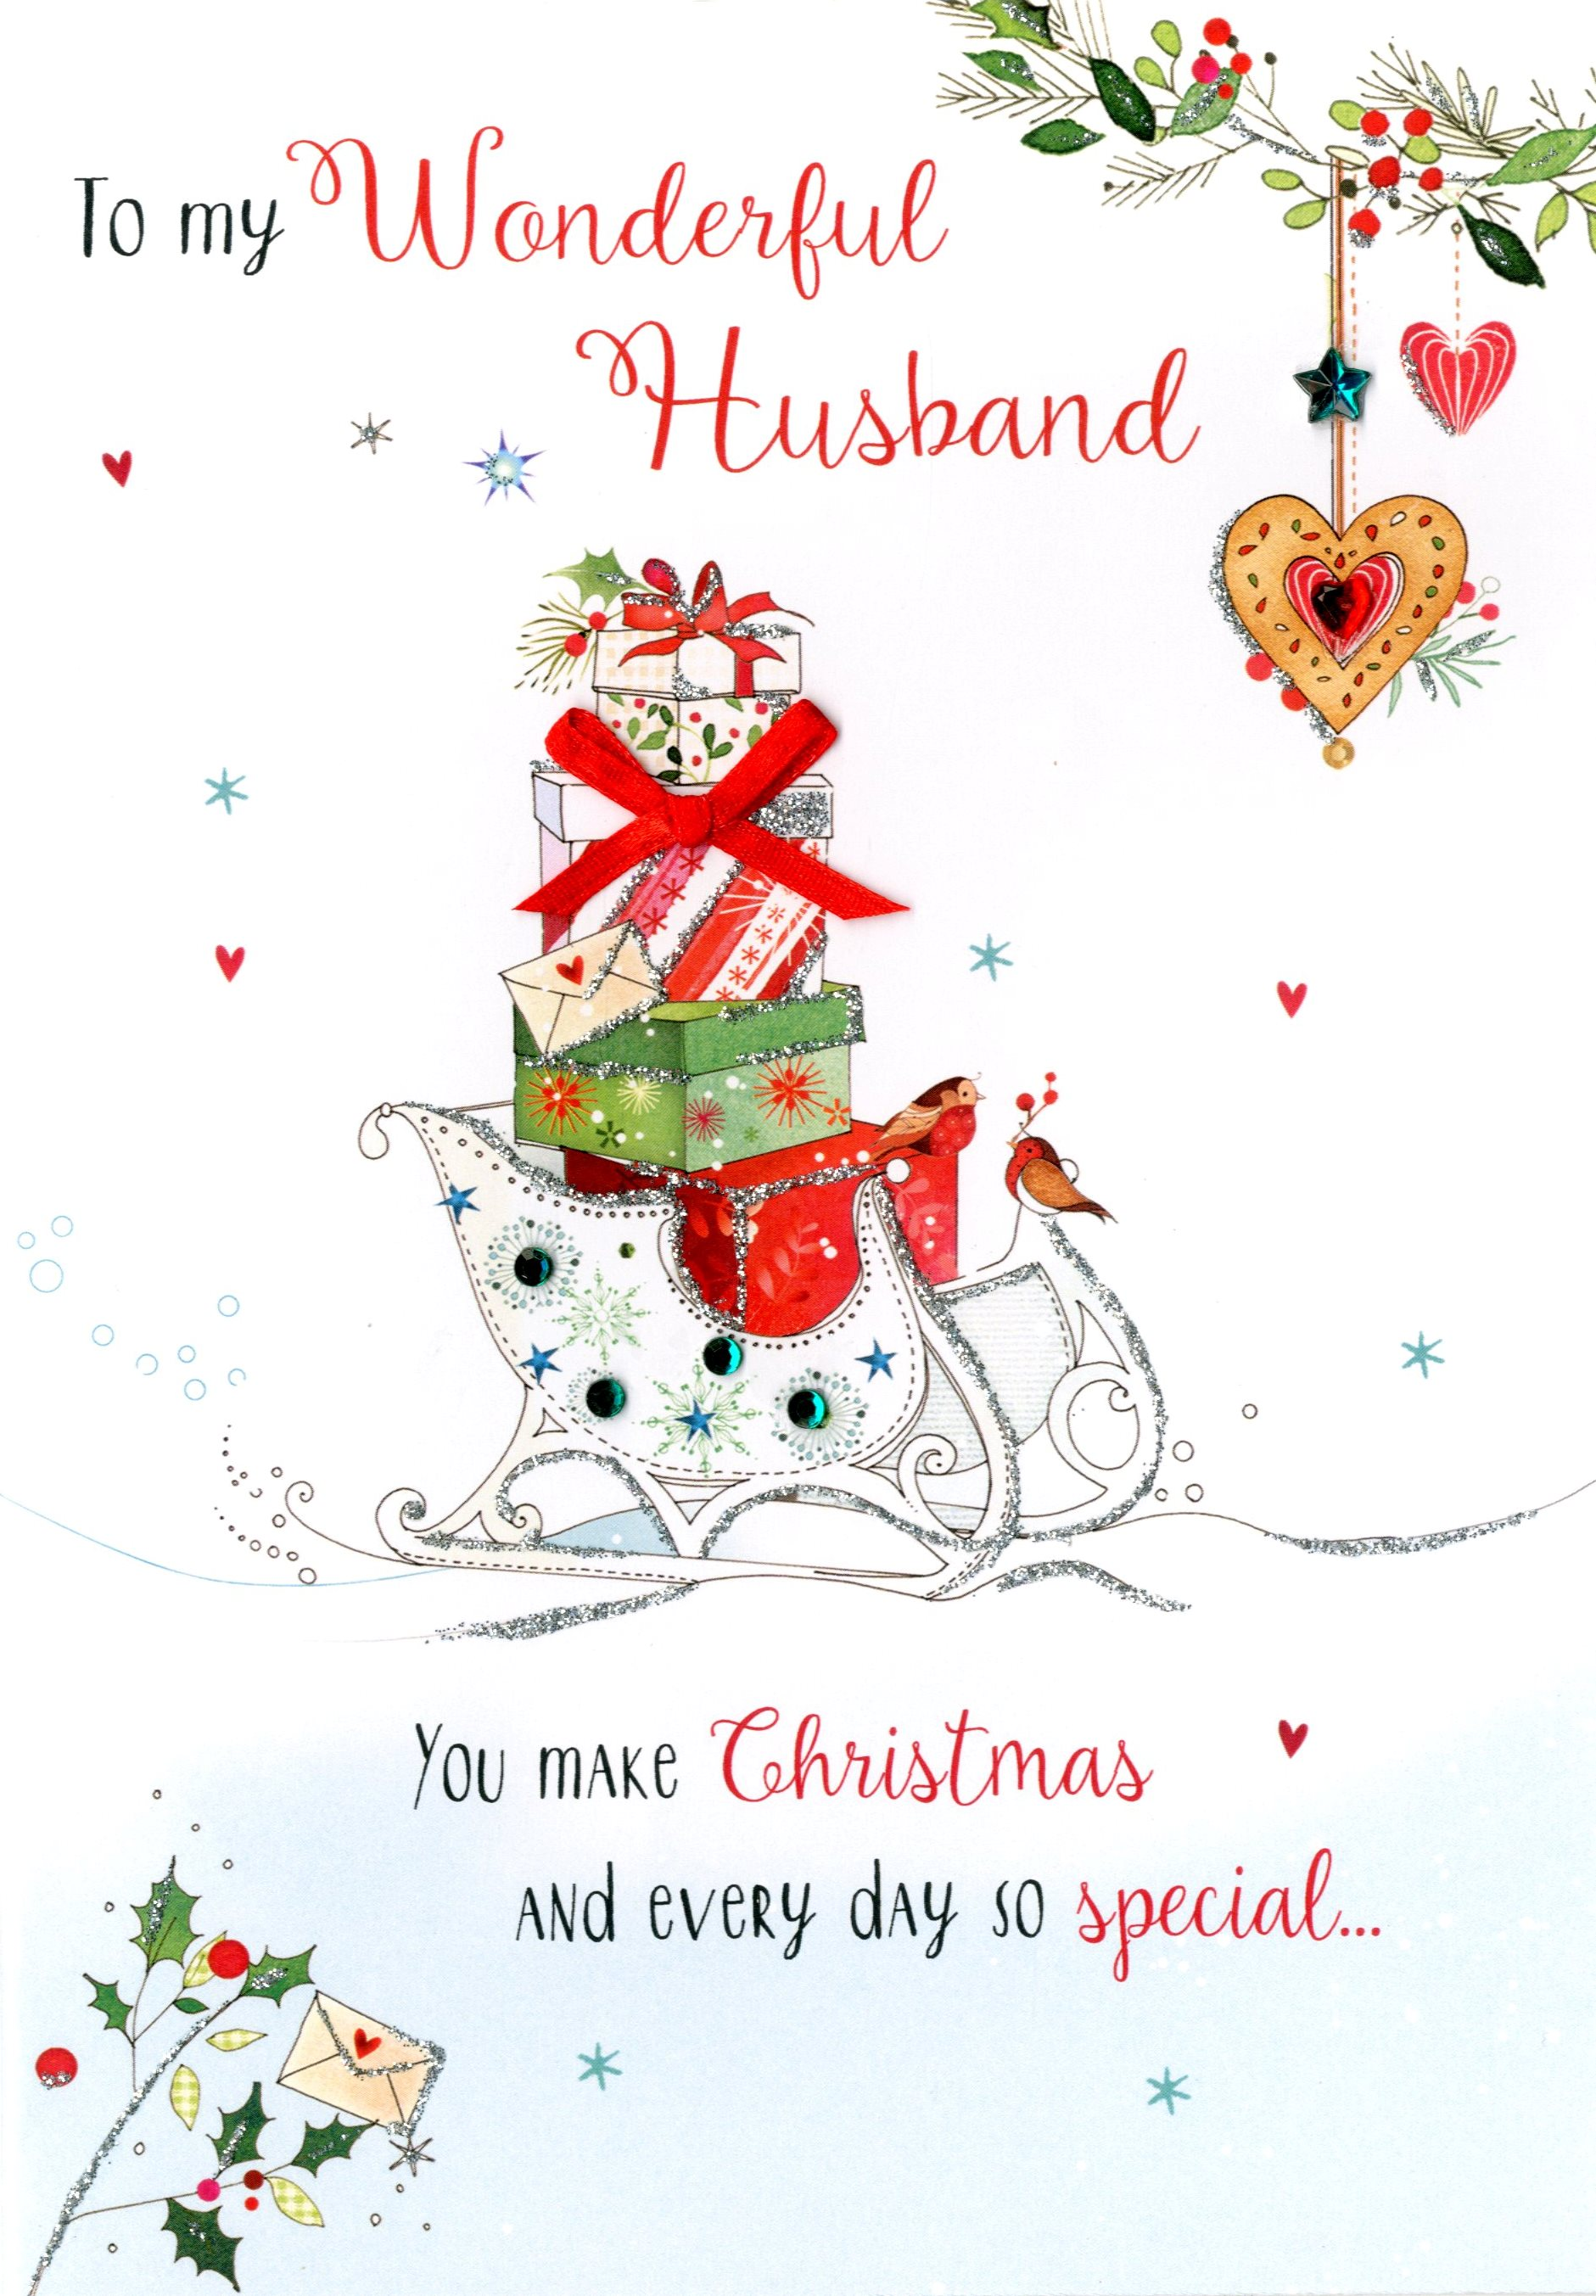 Husband Christmas Cards.Wonderful Husband Embellished Christmas Card